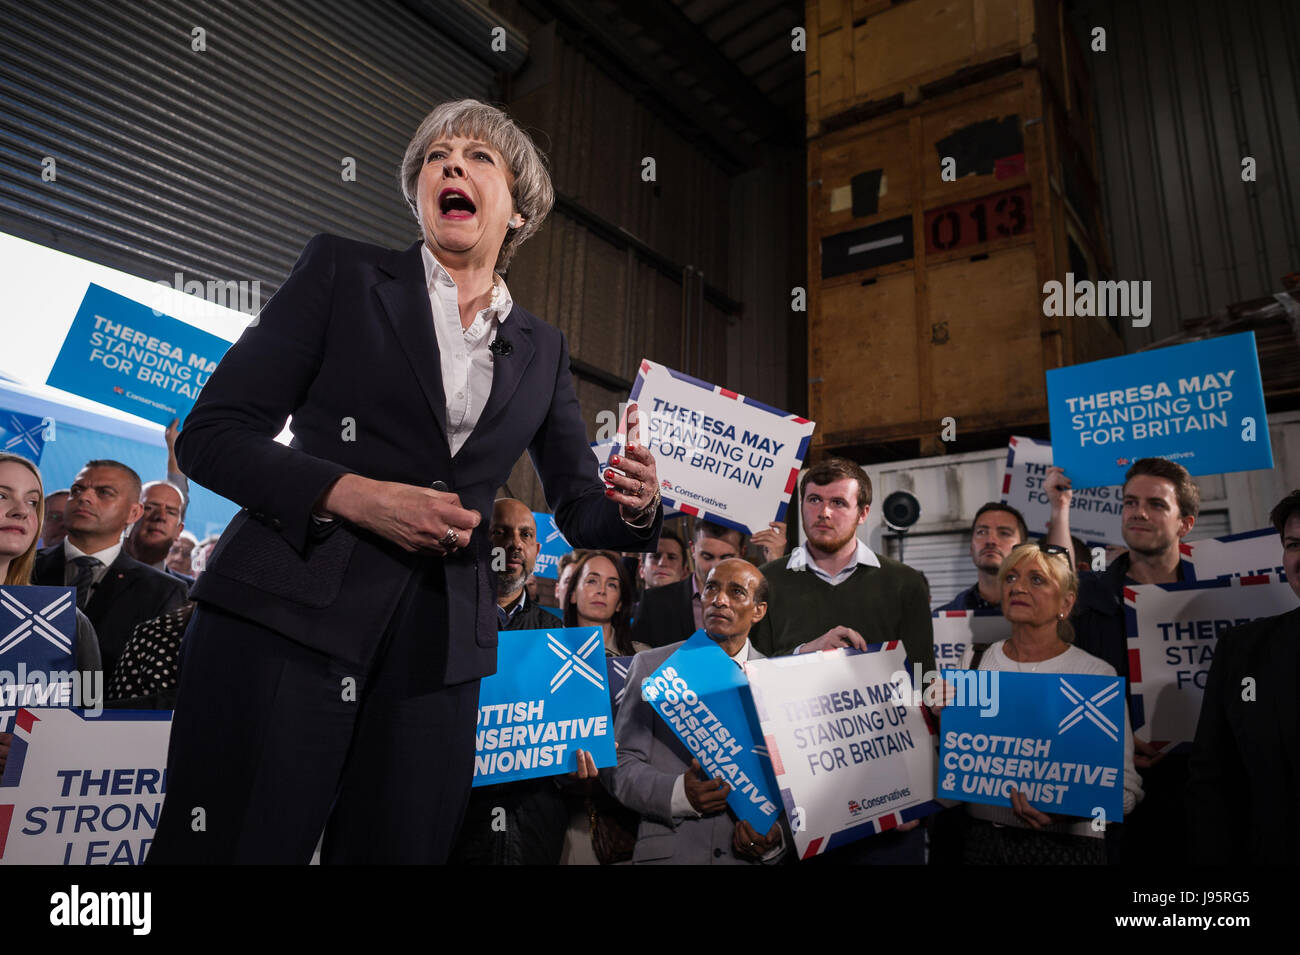 Edinburgh, UK. 05th June, 2017. Theresa May and Ruth Davidson at Clockwork Removals, Granton Pier to campaign in - Stock Image